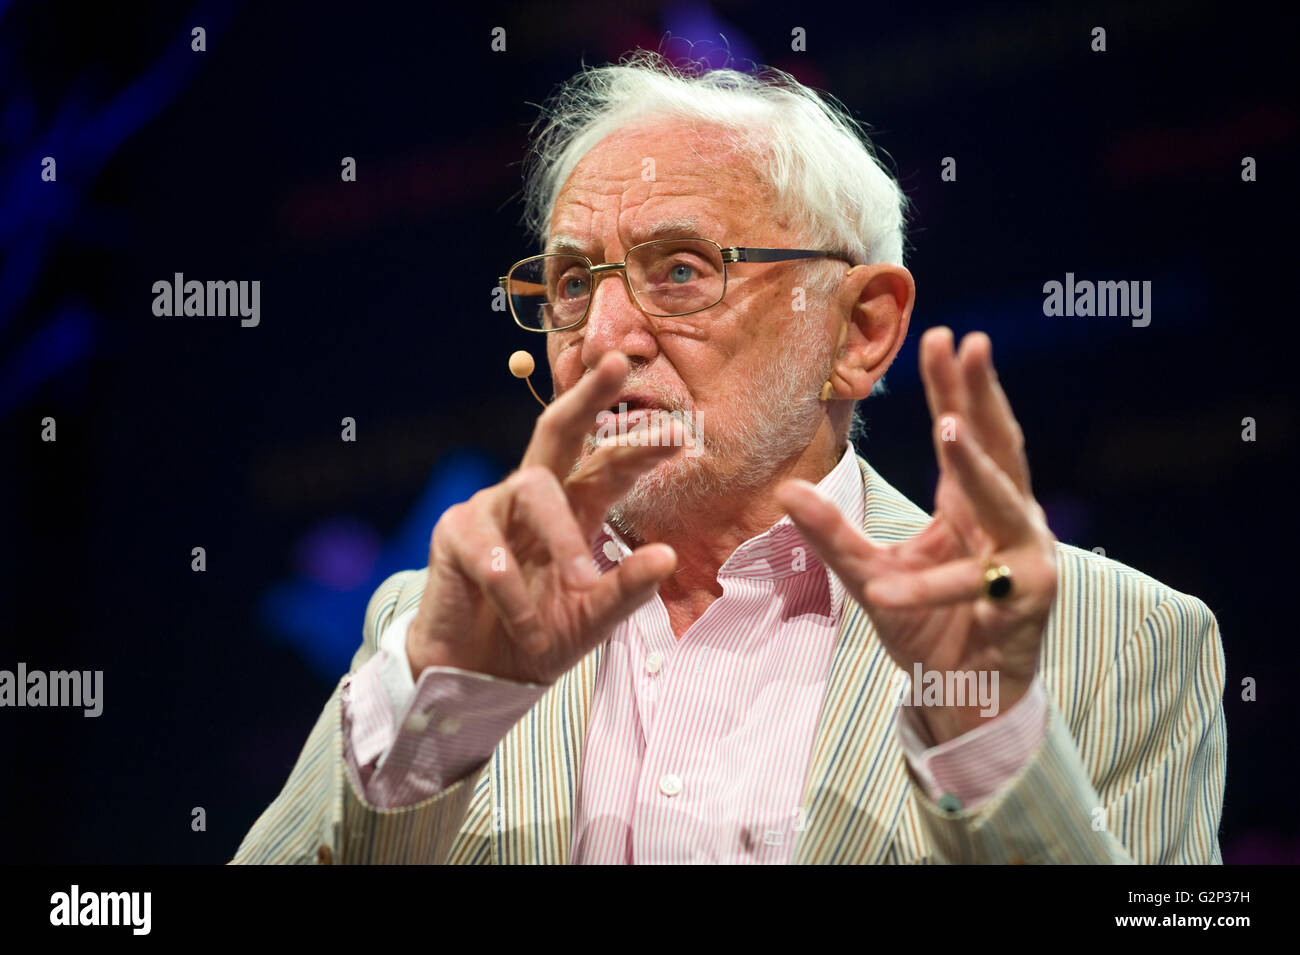 Shakespearian scholar Stanley Wells speaking on stage at Hay Festival 2016 - Stock Image